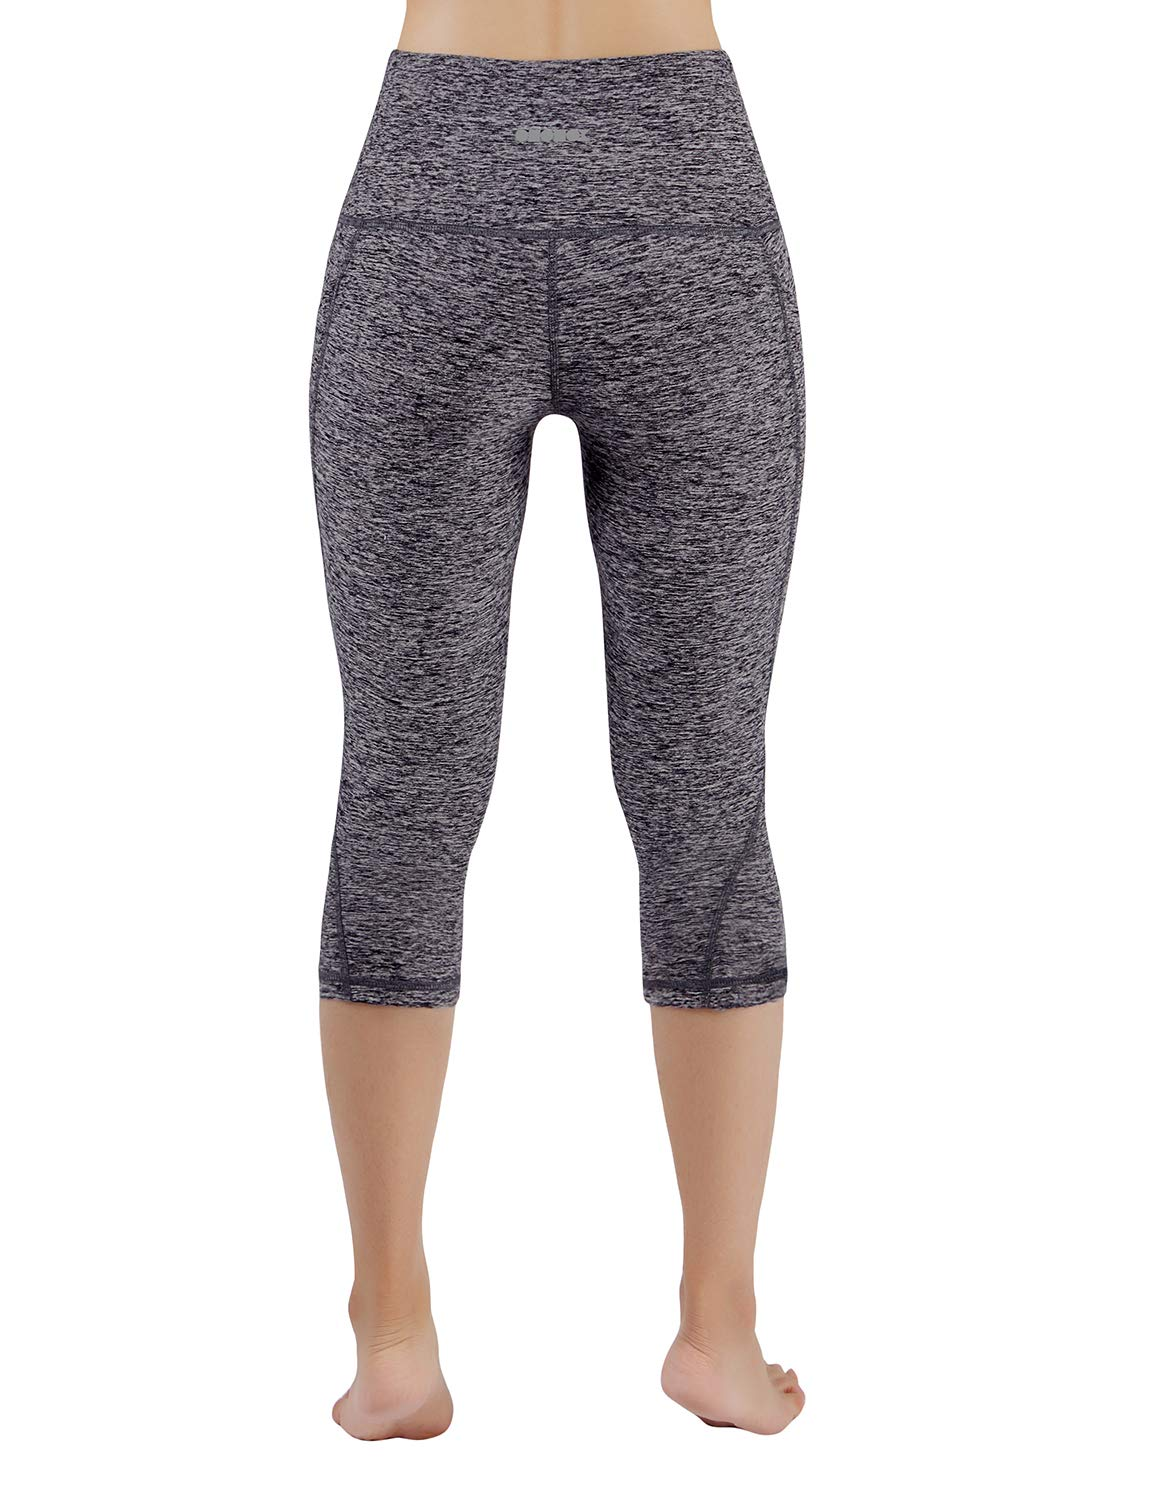 ODODOS High Waist Out Pocket Yoga Capris Pants Tummy Control Workout Running 4 Way Stretch Yoga Leggings,NavyHeather,X-Small by ODODOS (Image #3)